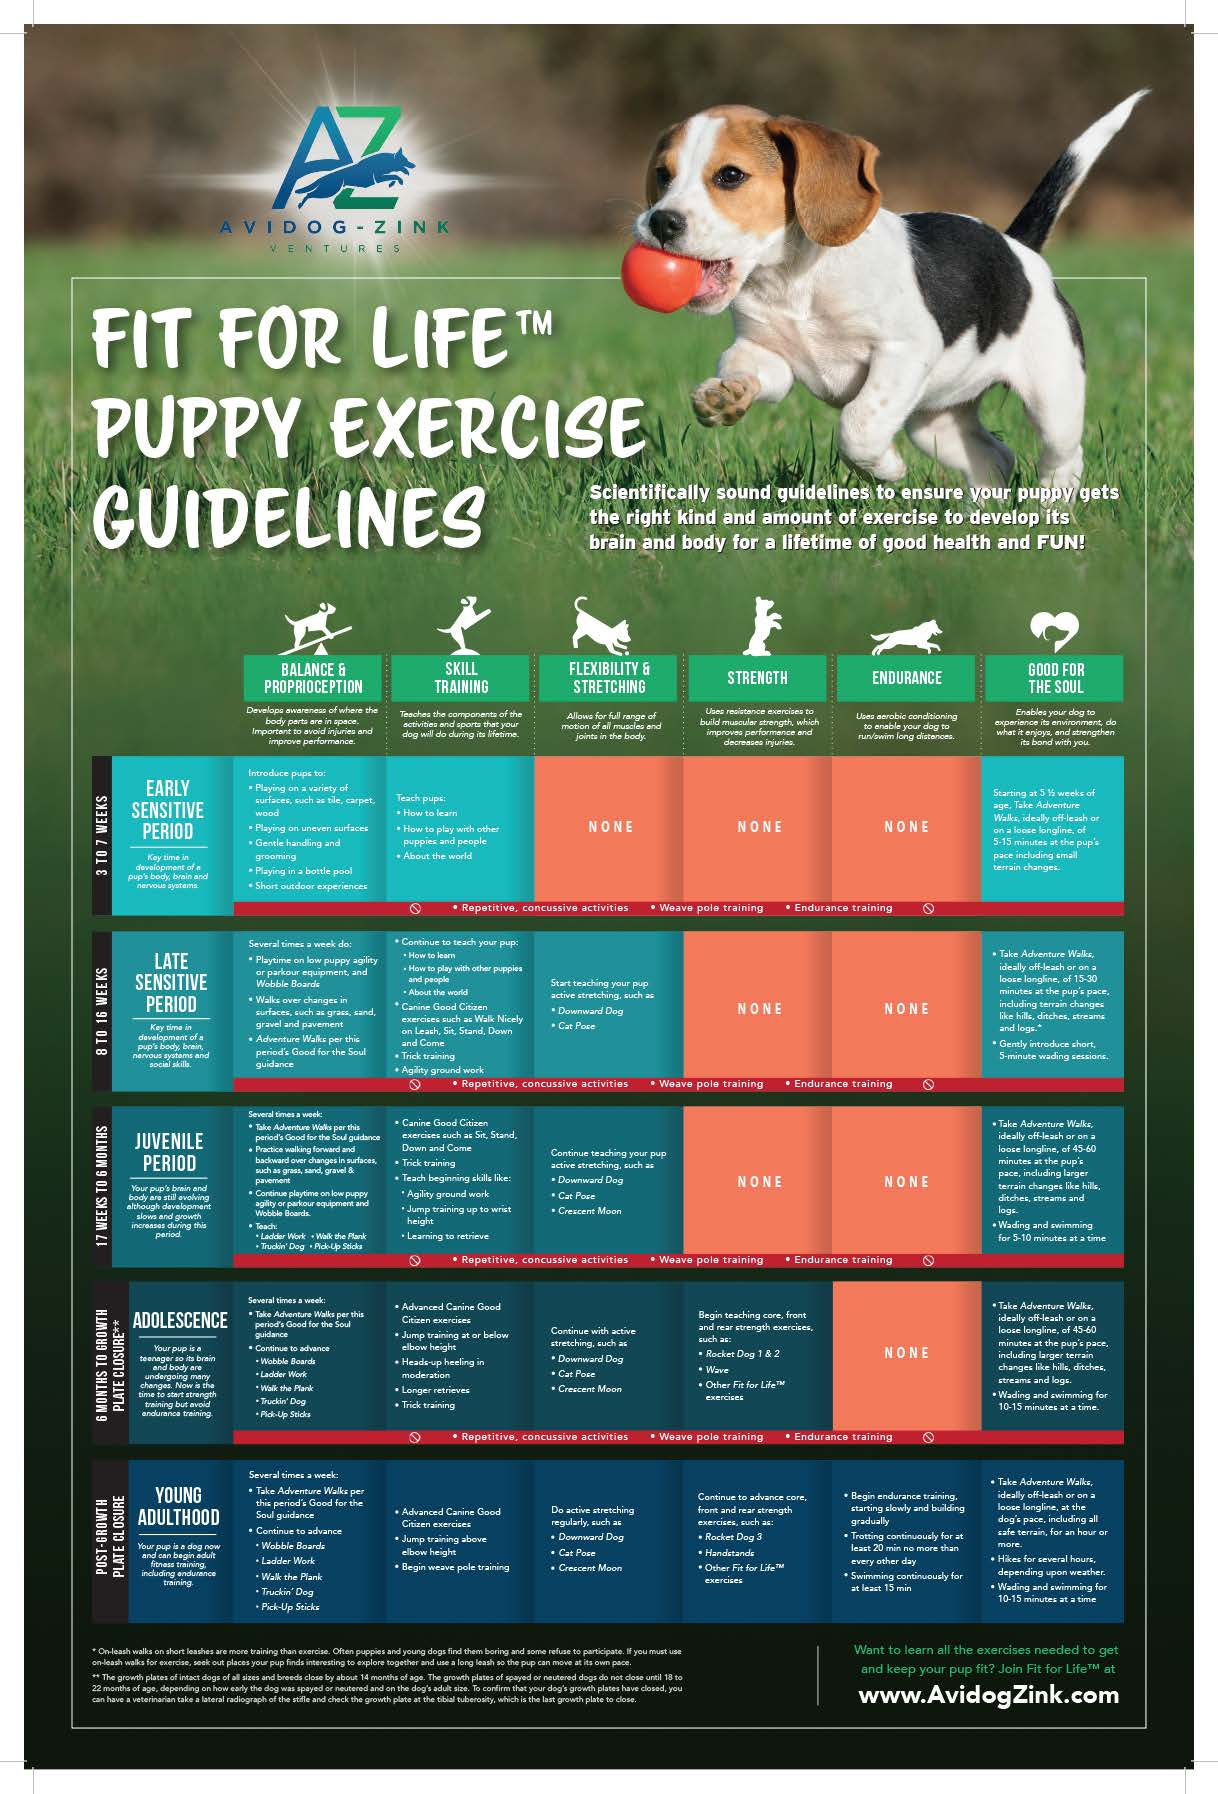 https://www.avidogzink.com/wp-content/uploads/puppy_exercise_guidelines_poster.pdf